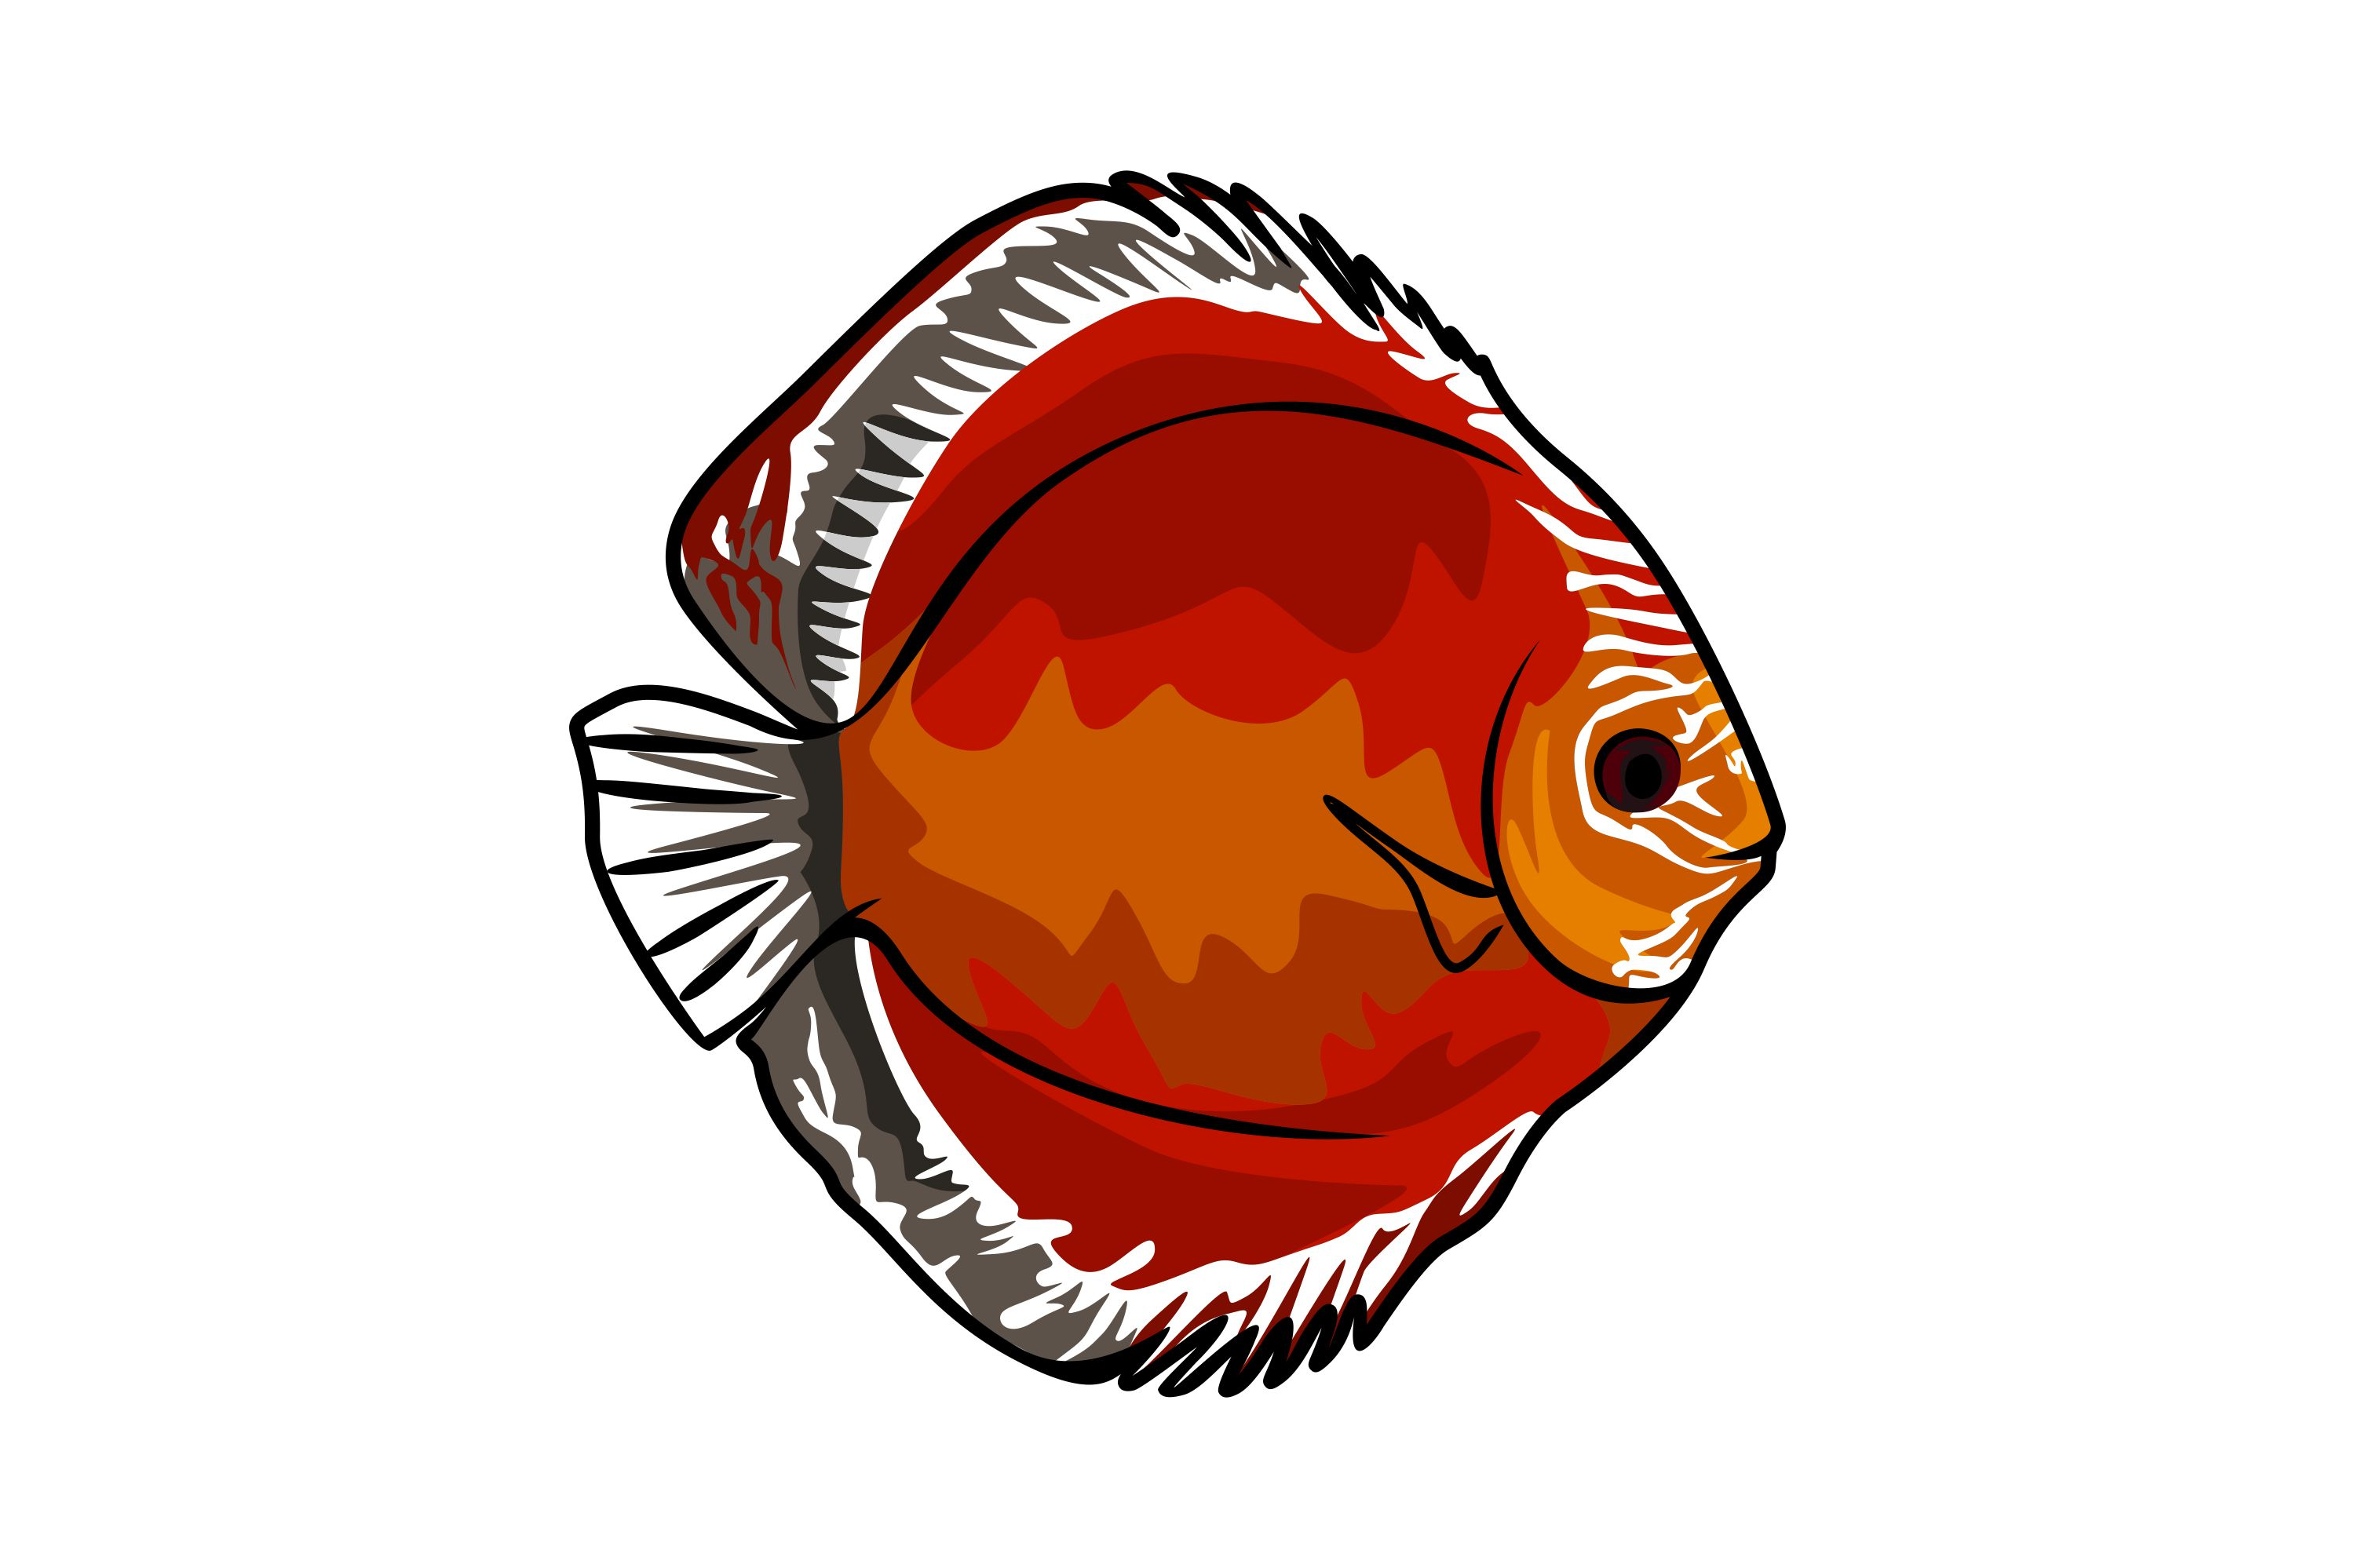 Download Free Fish Illustrations Graphic By Graphicrun123 Creative Fabrica SVG Cut Files